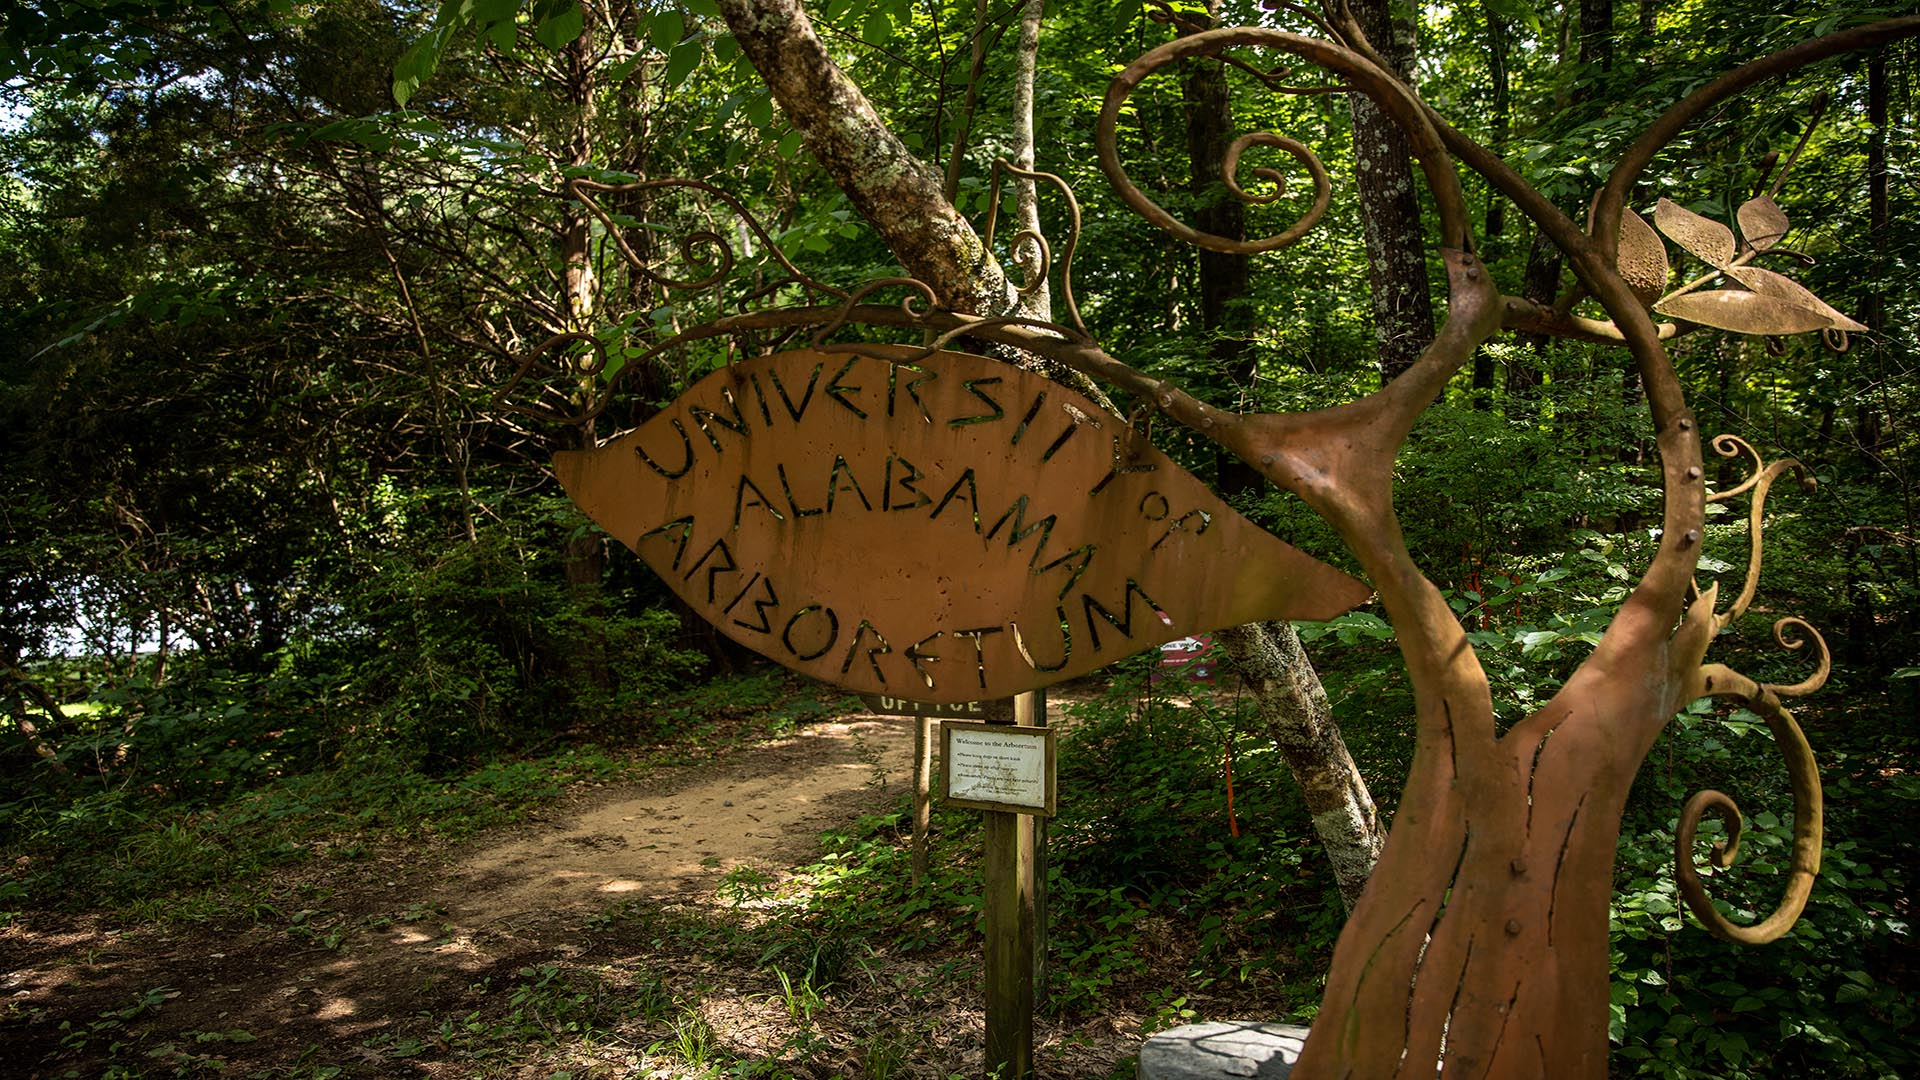 A sign says University of Alabama Arboretum out of metal.